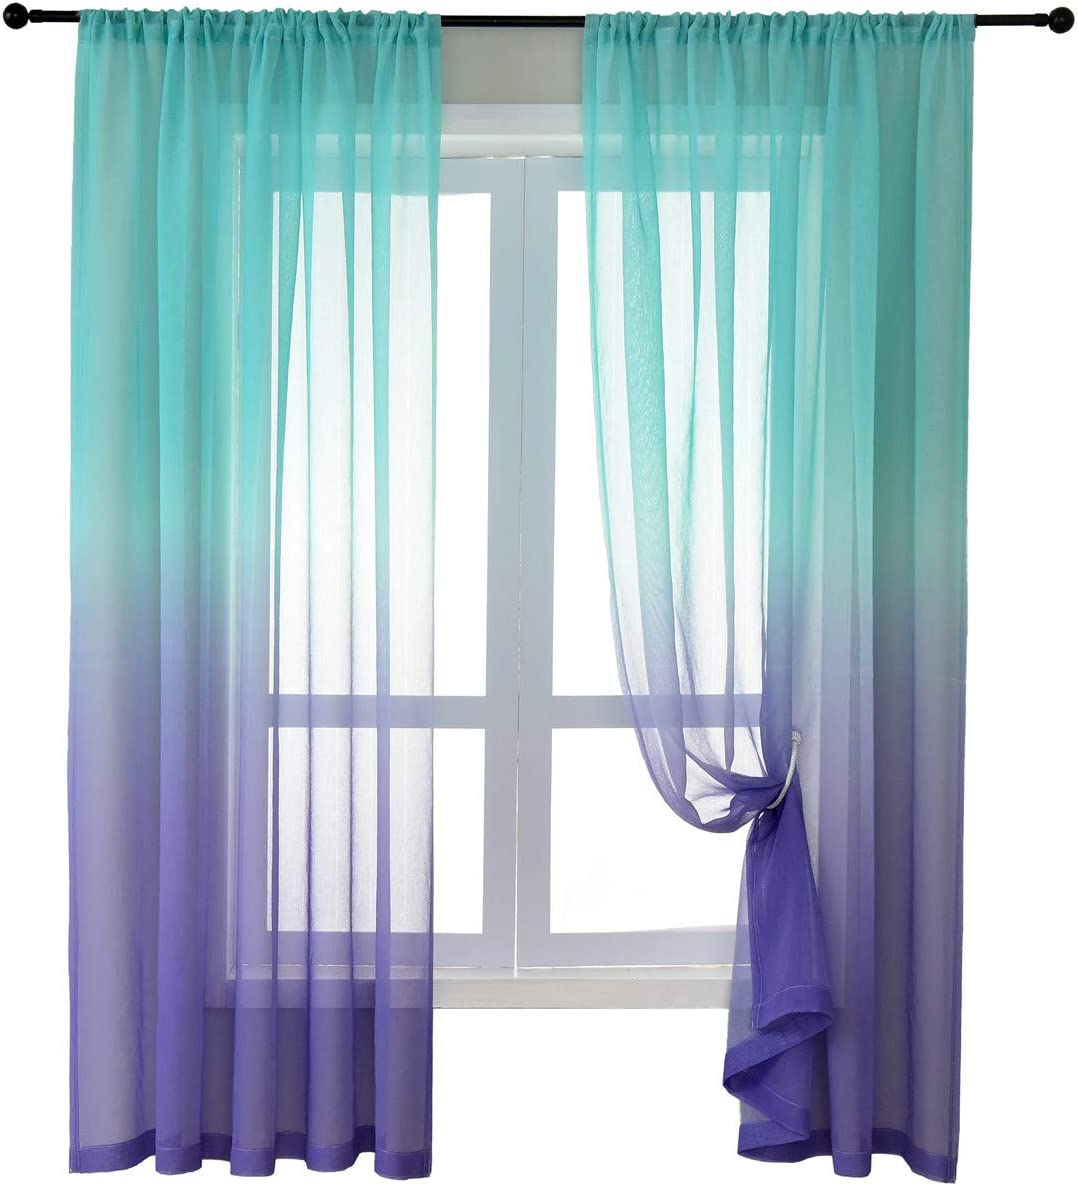 HomeyHo Turquoise Sheer Ombre Curtains 84 Inch Length 2 Panels for Girls Bedroom Nursery Baby Living Room Faux Linen Gradient Window Drapes and Curtains Decorative Blue and Purple 52 x 84 Inch